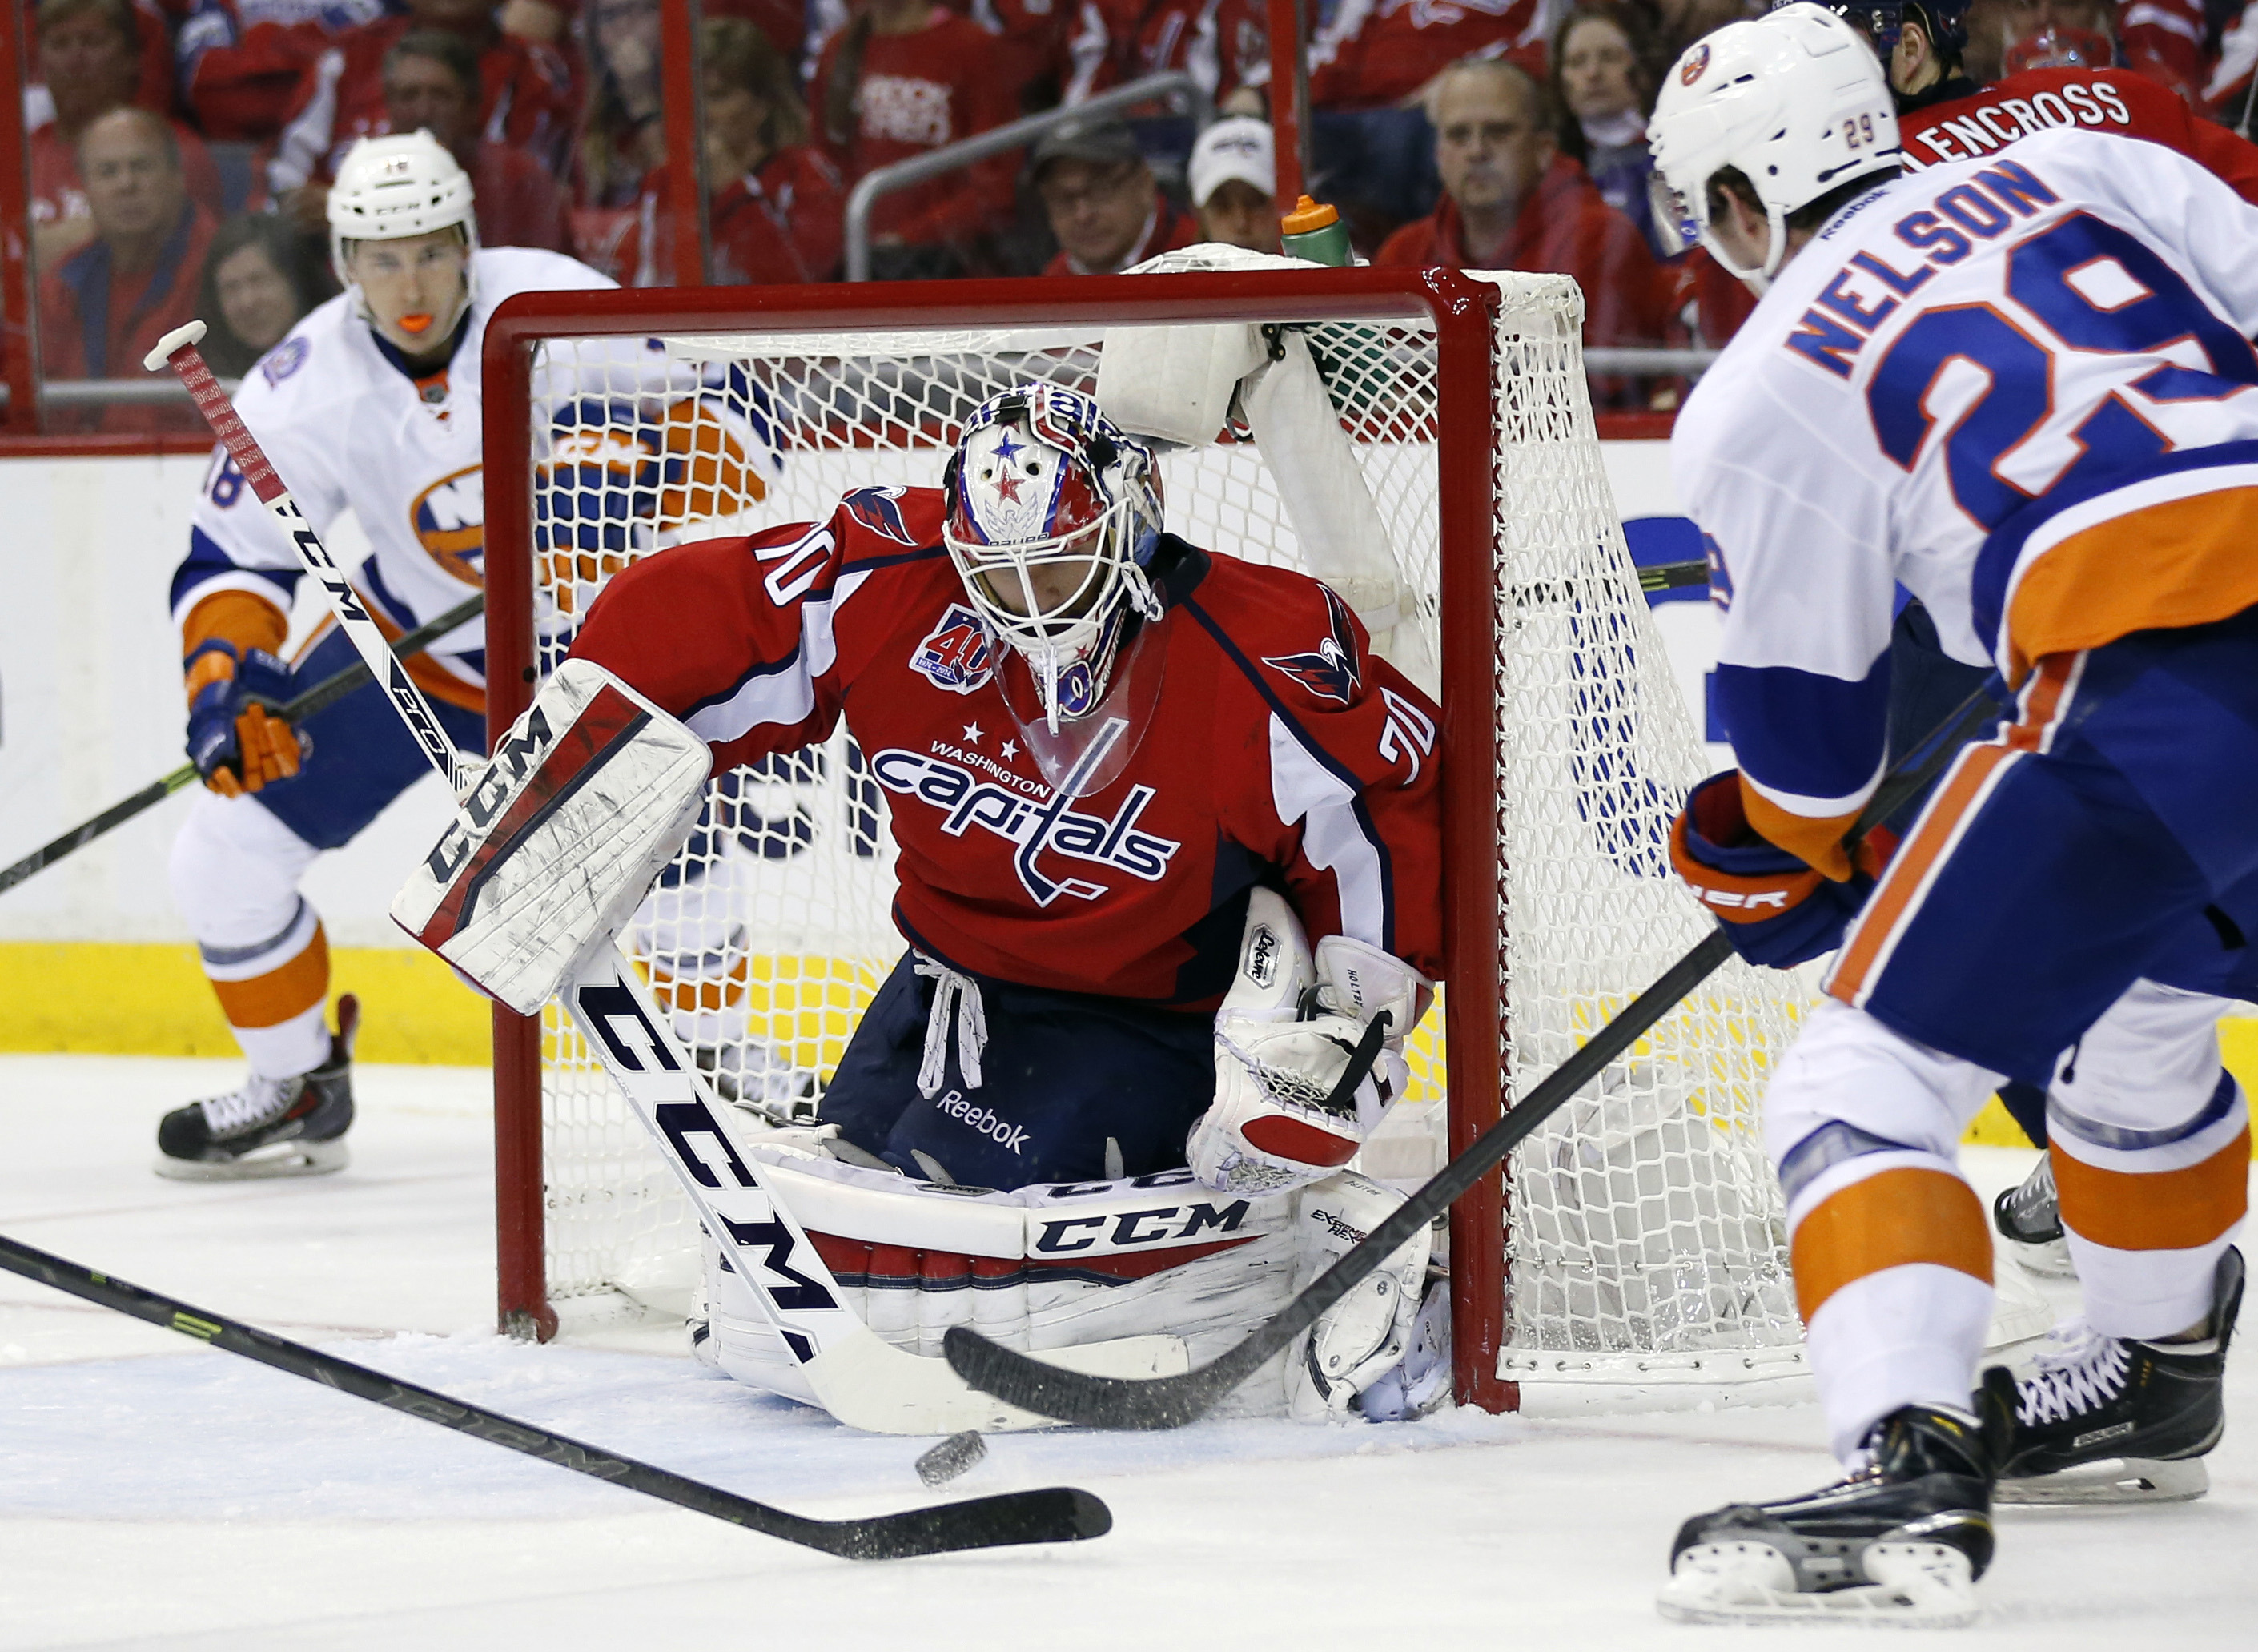 Washington Capitals goalie Braden Holtby (70) blocks a shot by New York Islanders center Brock Nelson (29) during the second period of Game 7 in the first round of the NHL hockey Stanley Cup playoffs, Monday, April 27, 2015, in Washington. (AP Photo/Alex